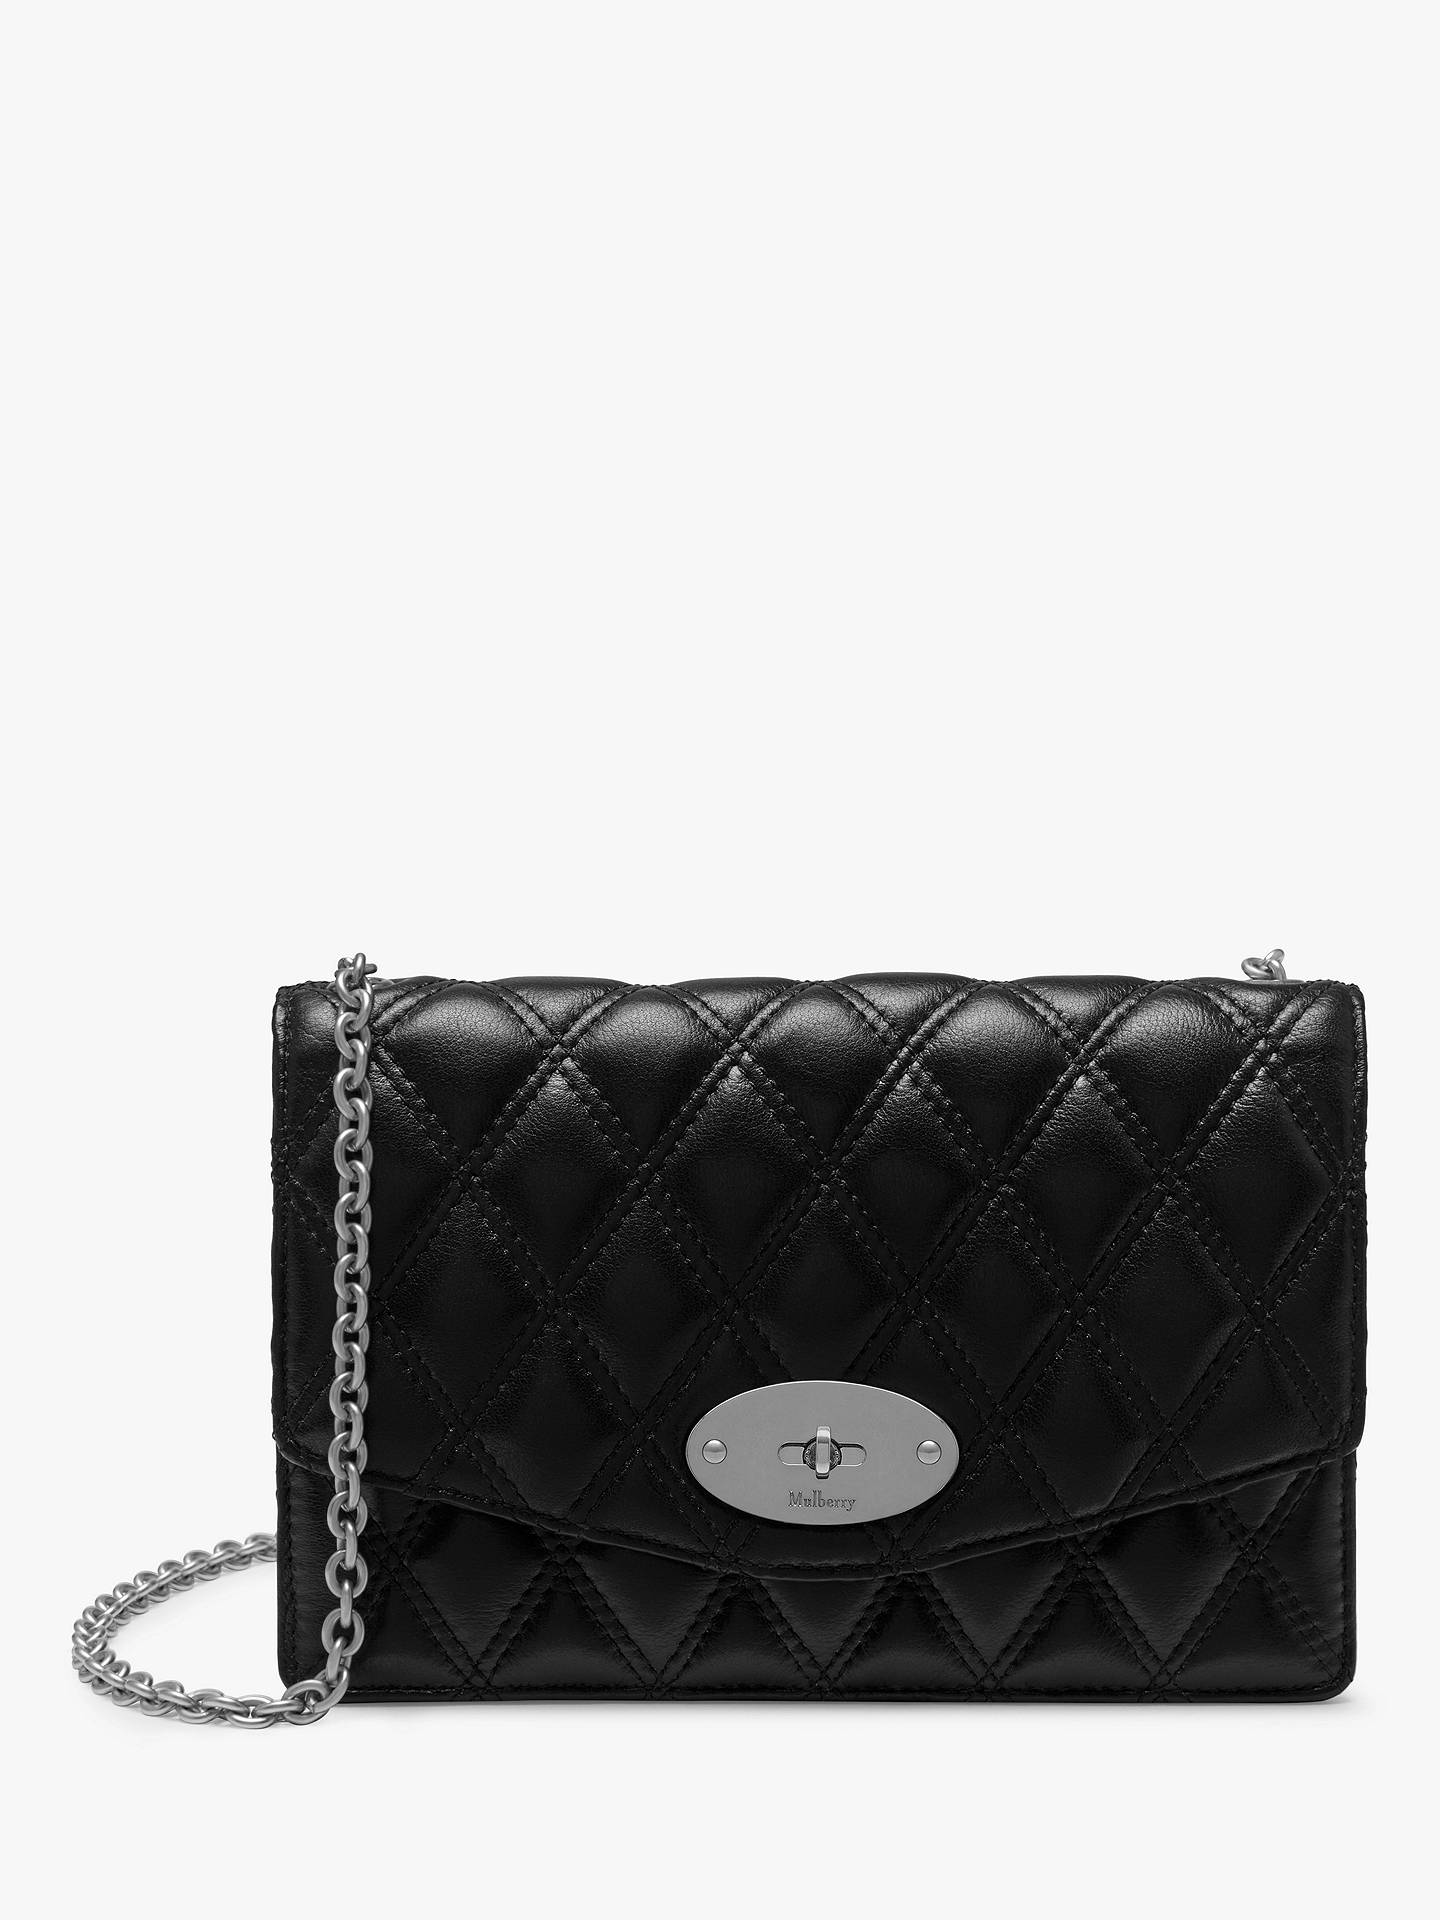 96a6c4b3433 Buy Mulberry Small Darley Quilted Smooth Calf Chain Clutch Bag, Black  Online at johnlewis.